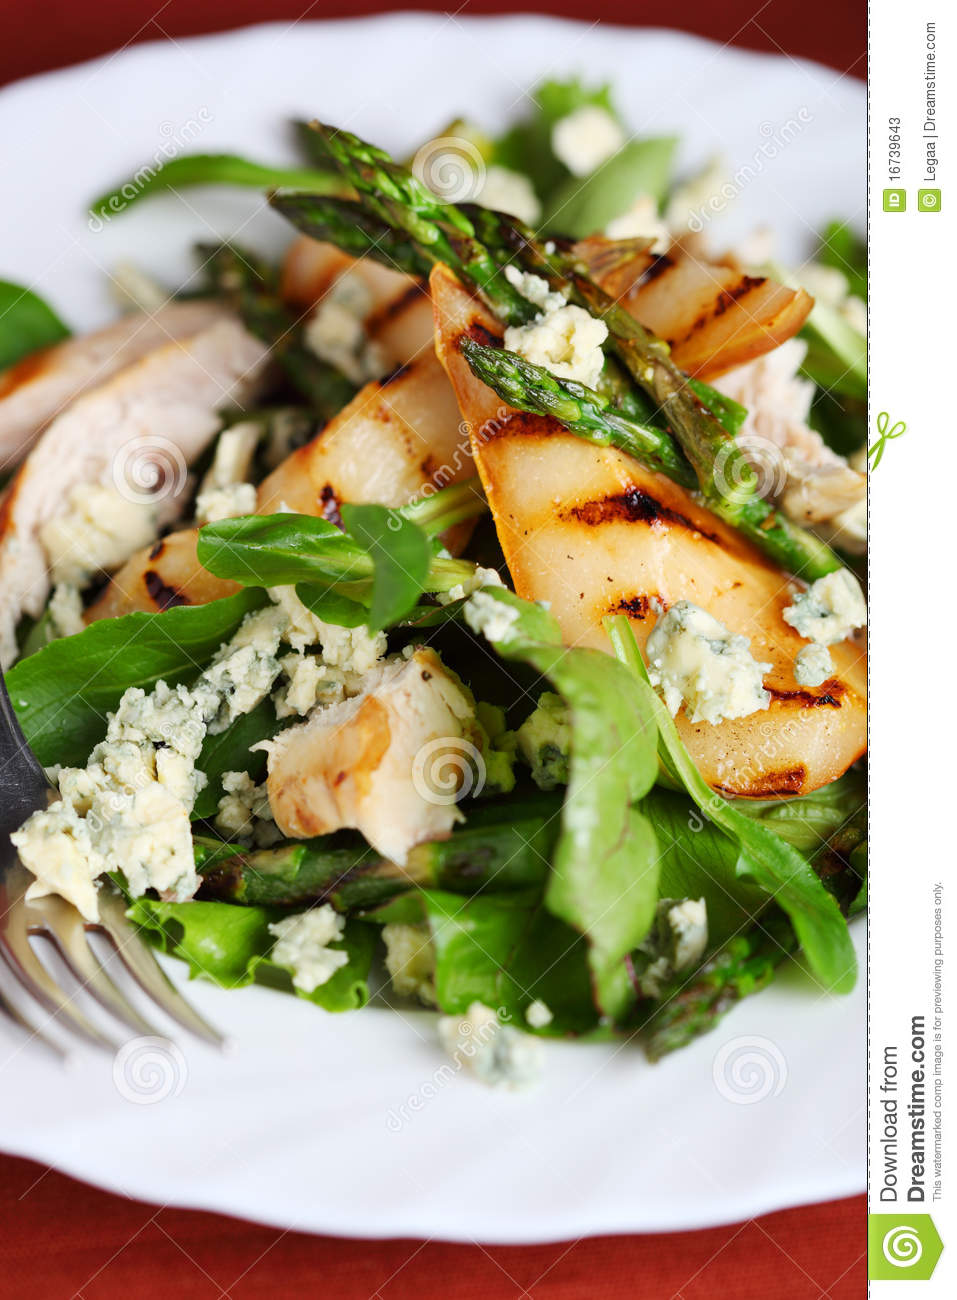 Green salad with pears and grilled